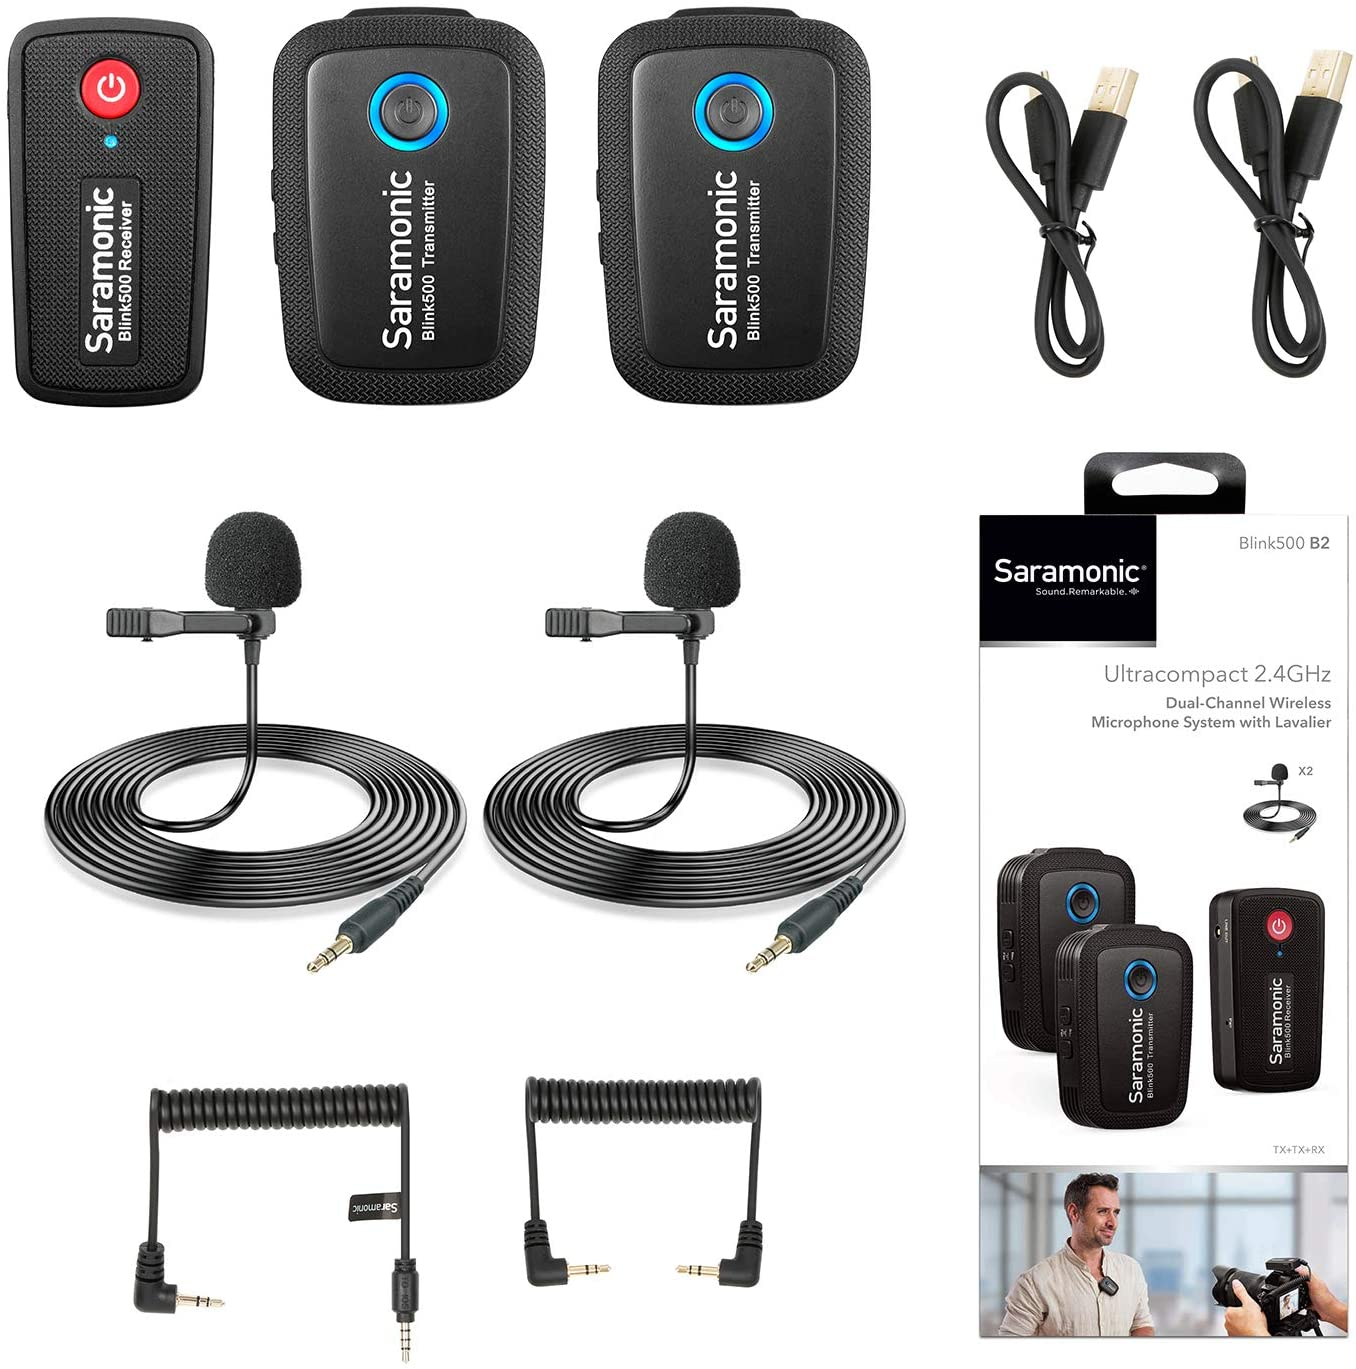 2.4GHz Wireless Microphone System Two Transmitters for Camera Smartphone, Saramonic Ultracompact Dual-channel Mic for DSLR, Mirrorless, Video Cameras, Mobile Devices Youtube Facebook Live (TRS & TRRS) 71LamWhNMYL